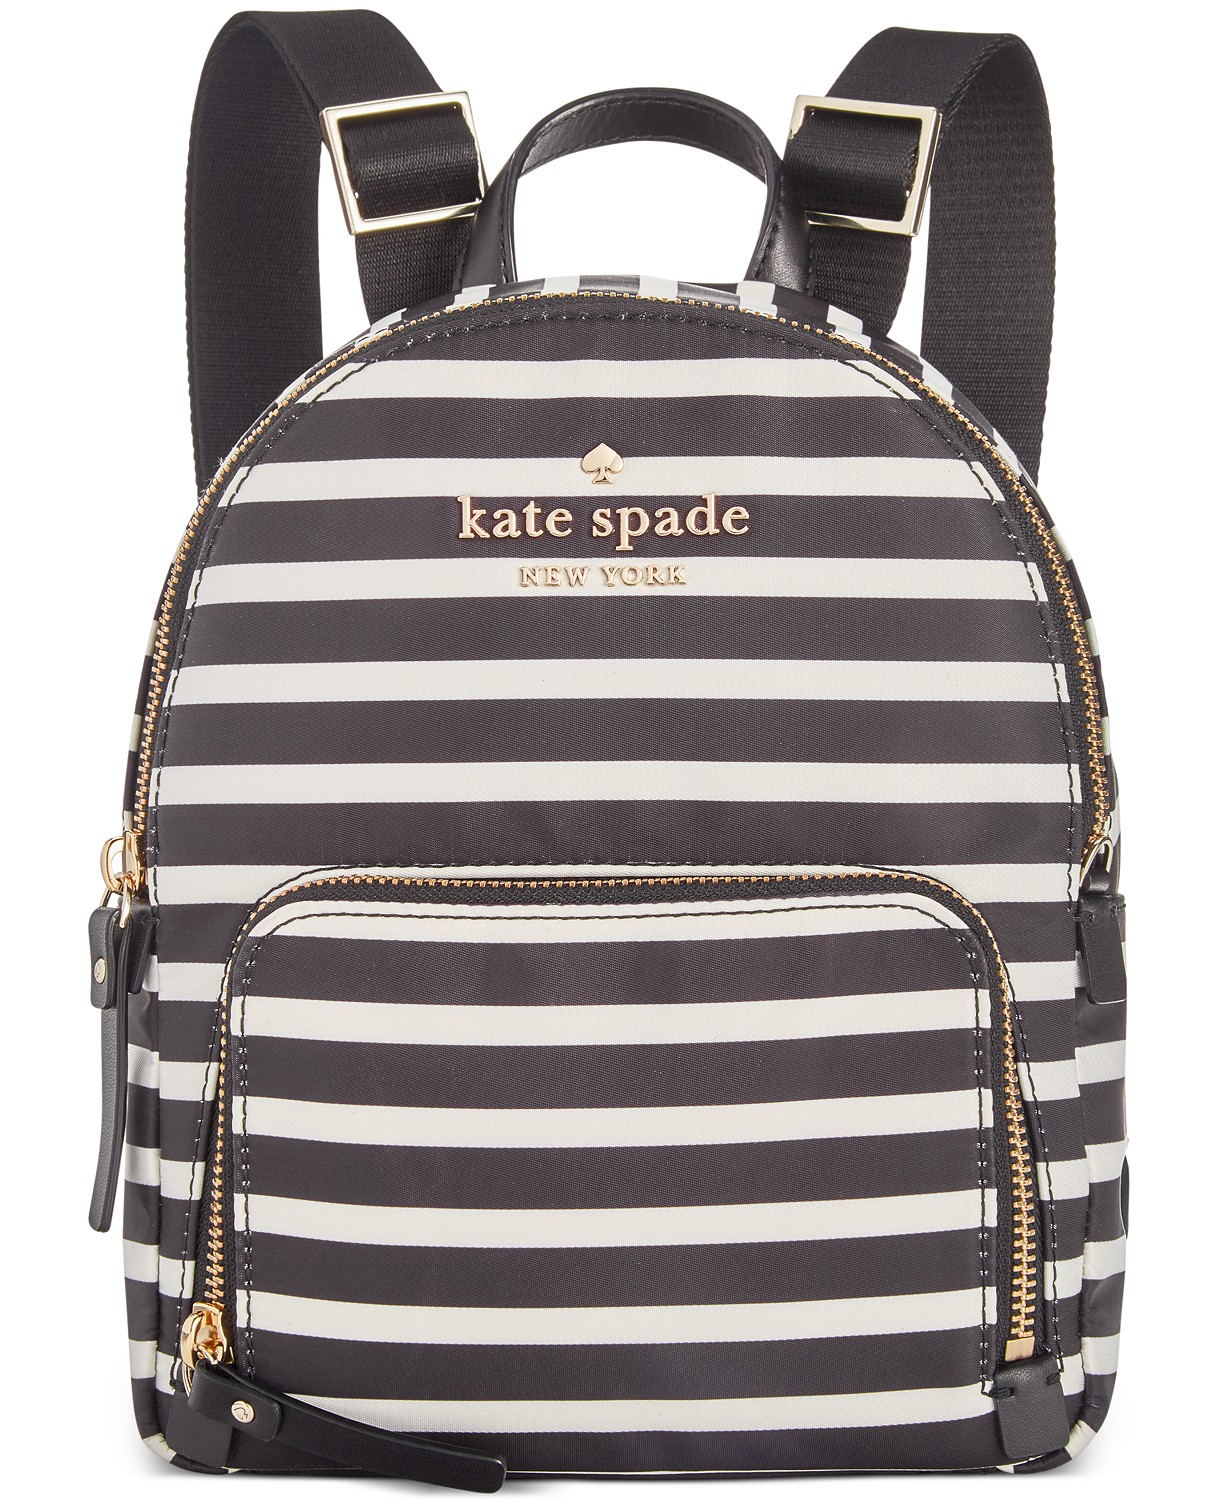 Watson Lane Mini Hartley Backpack